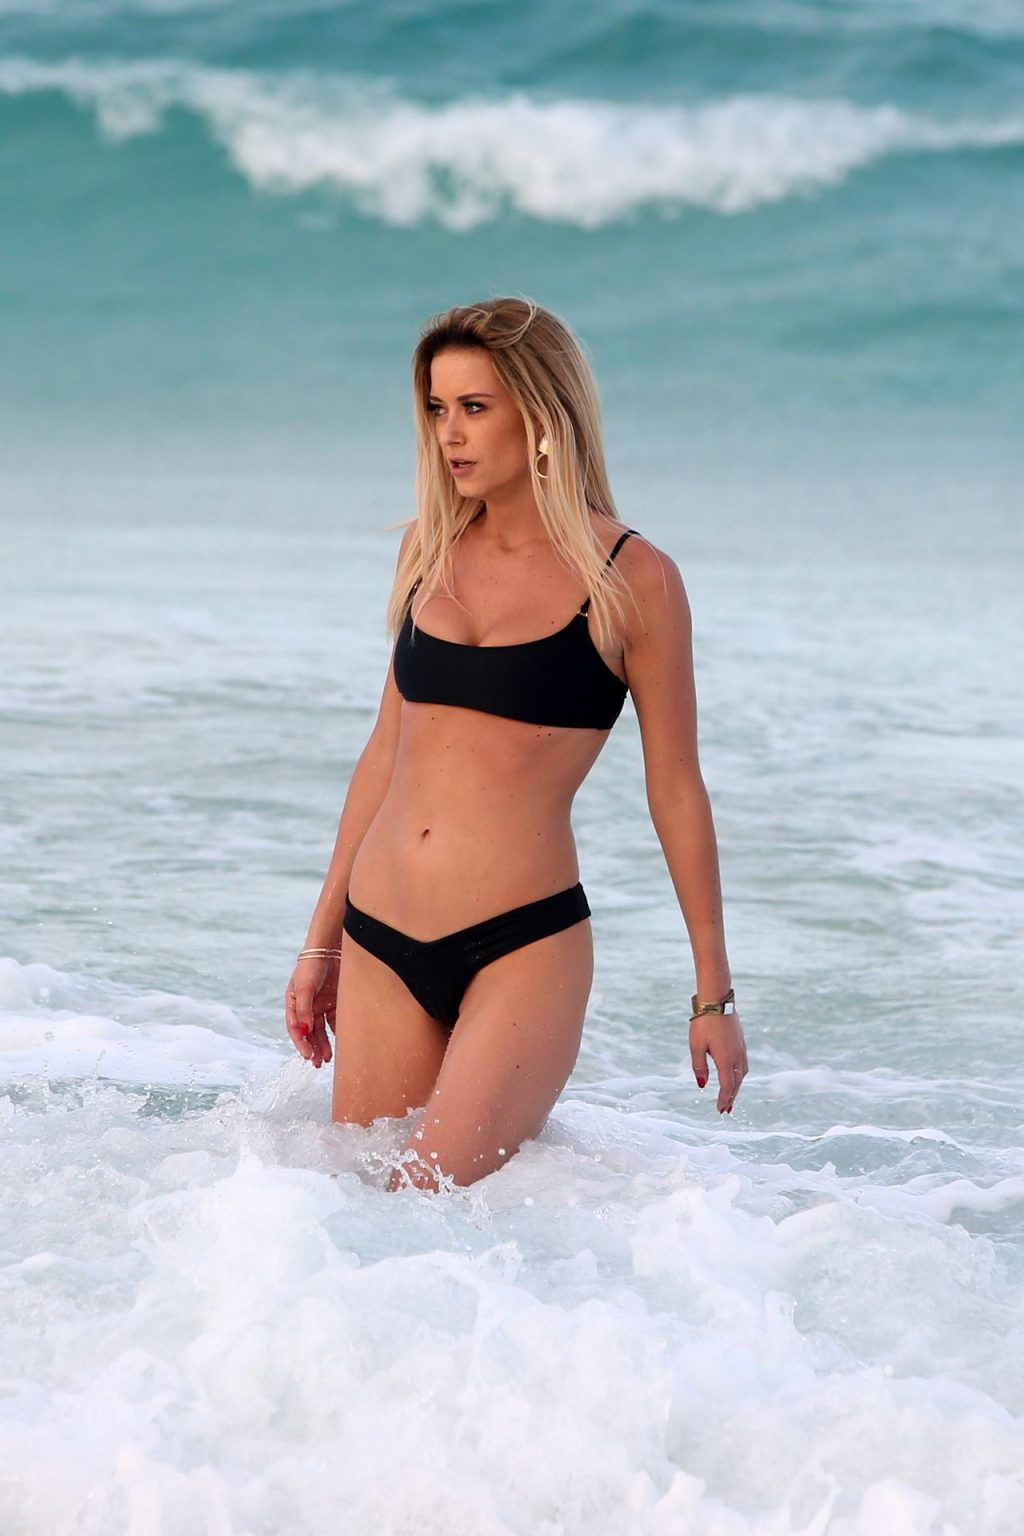 Olivia Bentley Sexy The Fappening Blog 25 1024x1536 - Olivia Bentley and Joshua Ritchie Enjoy Their Vacation in Punta Cuna (26 Photos)